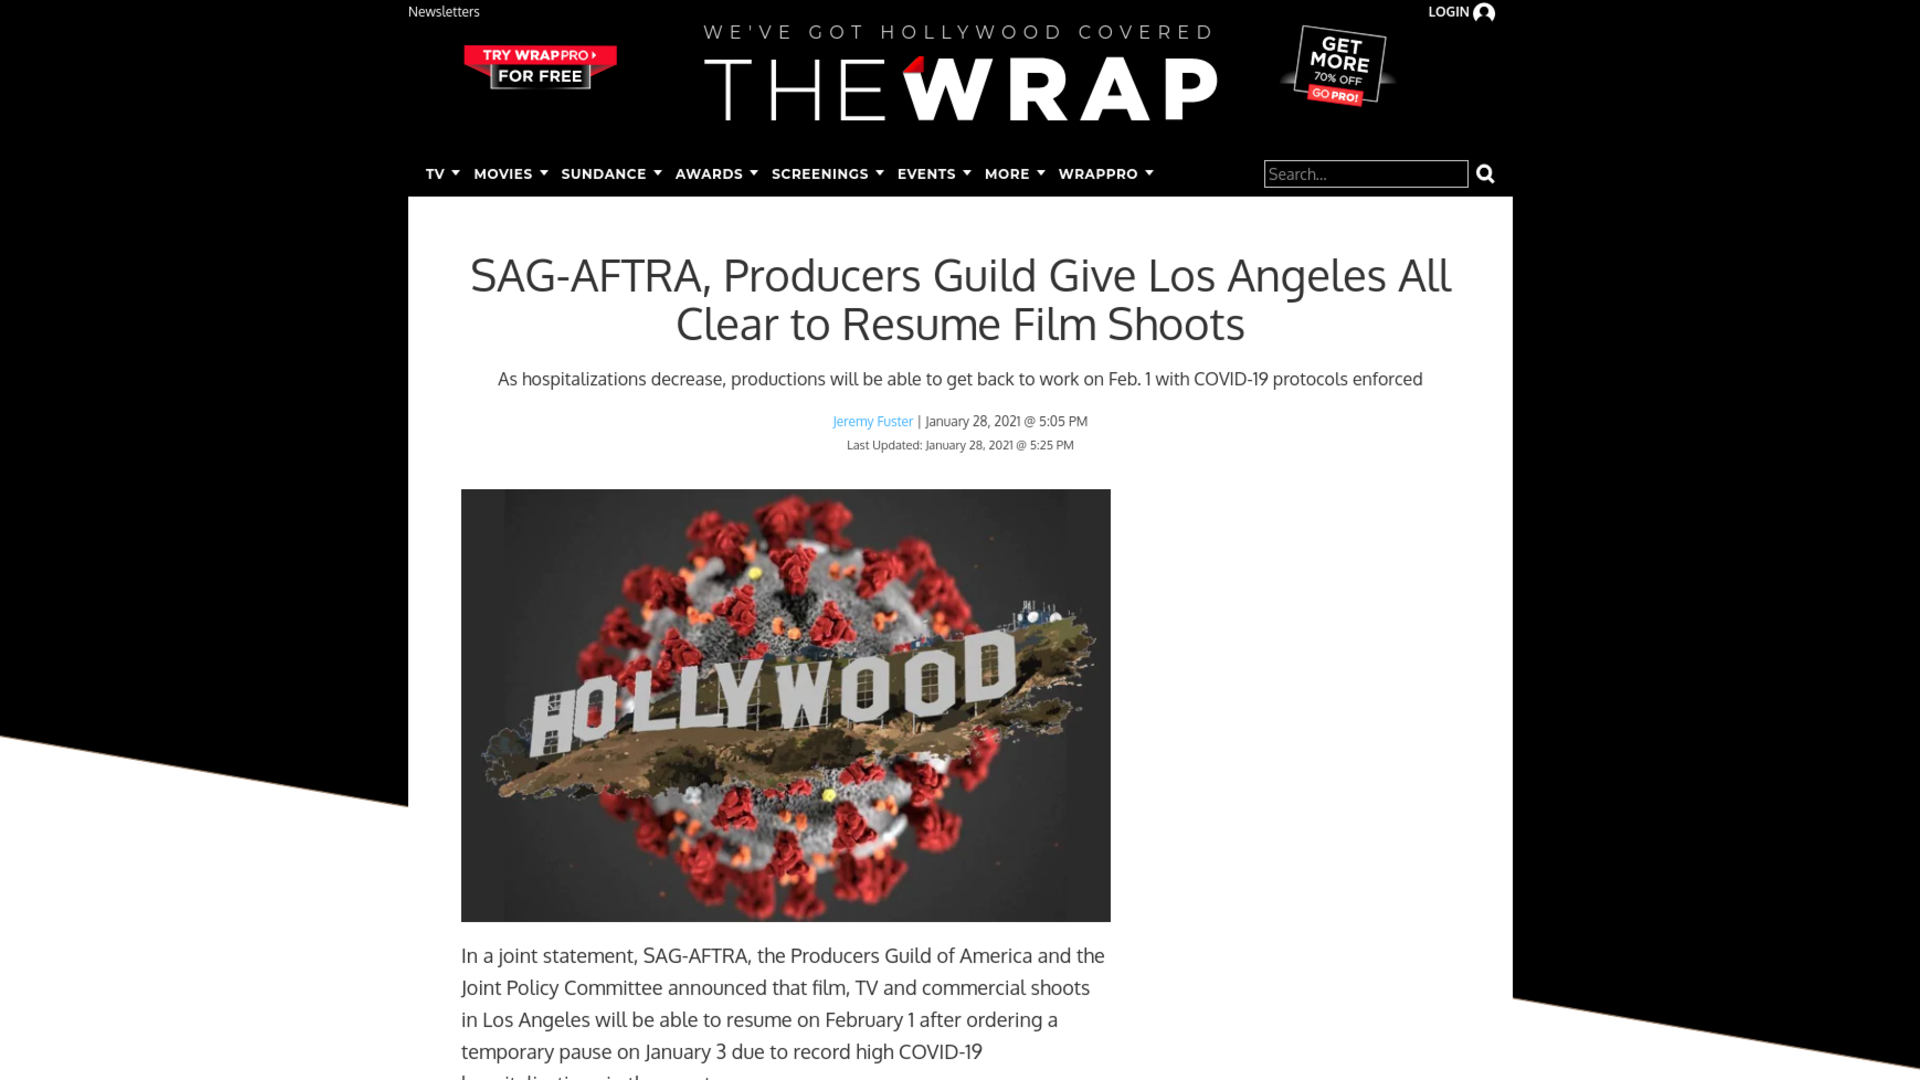 Fairness Rocks News SAG-AFTRA, Producers Guild Give Los Angeles All Clear to Resume Film Shoots